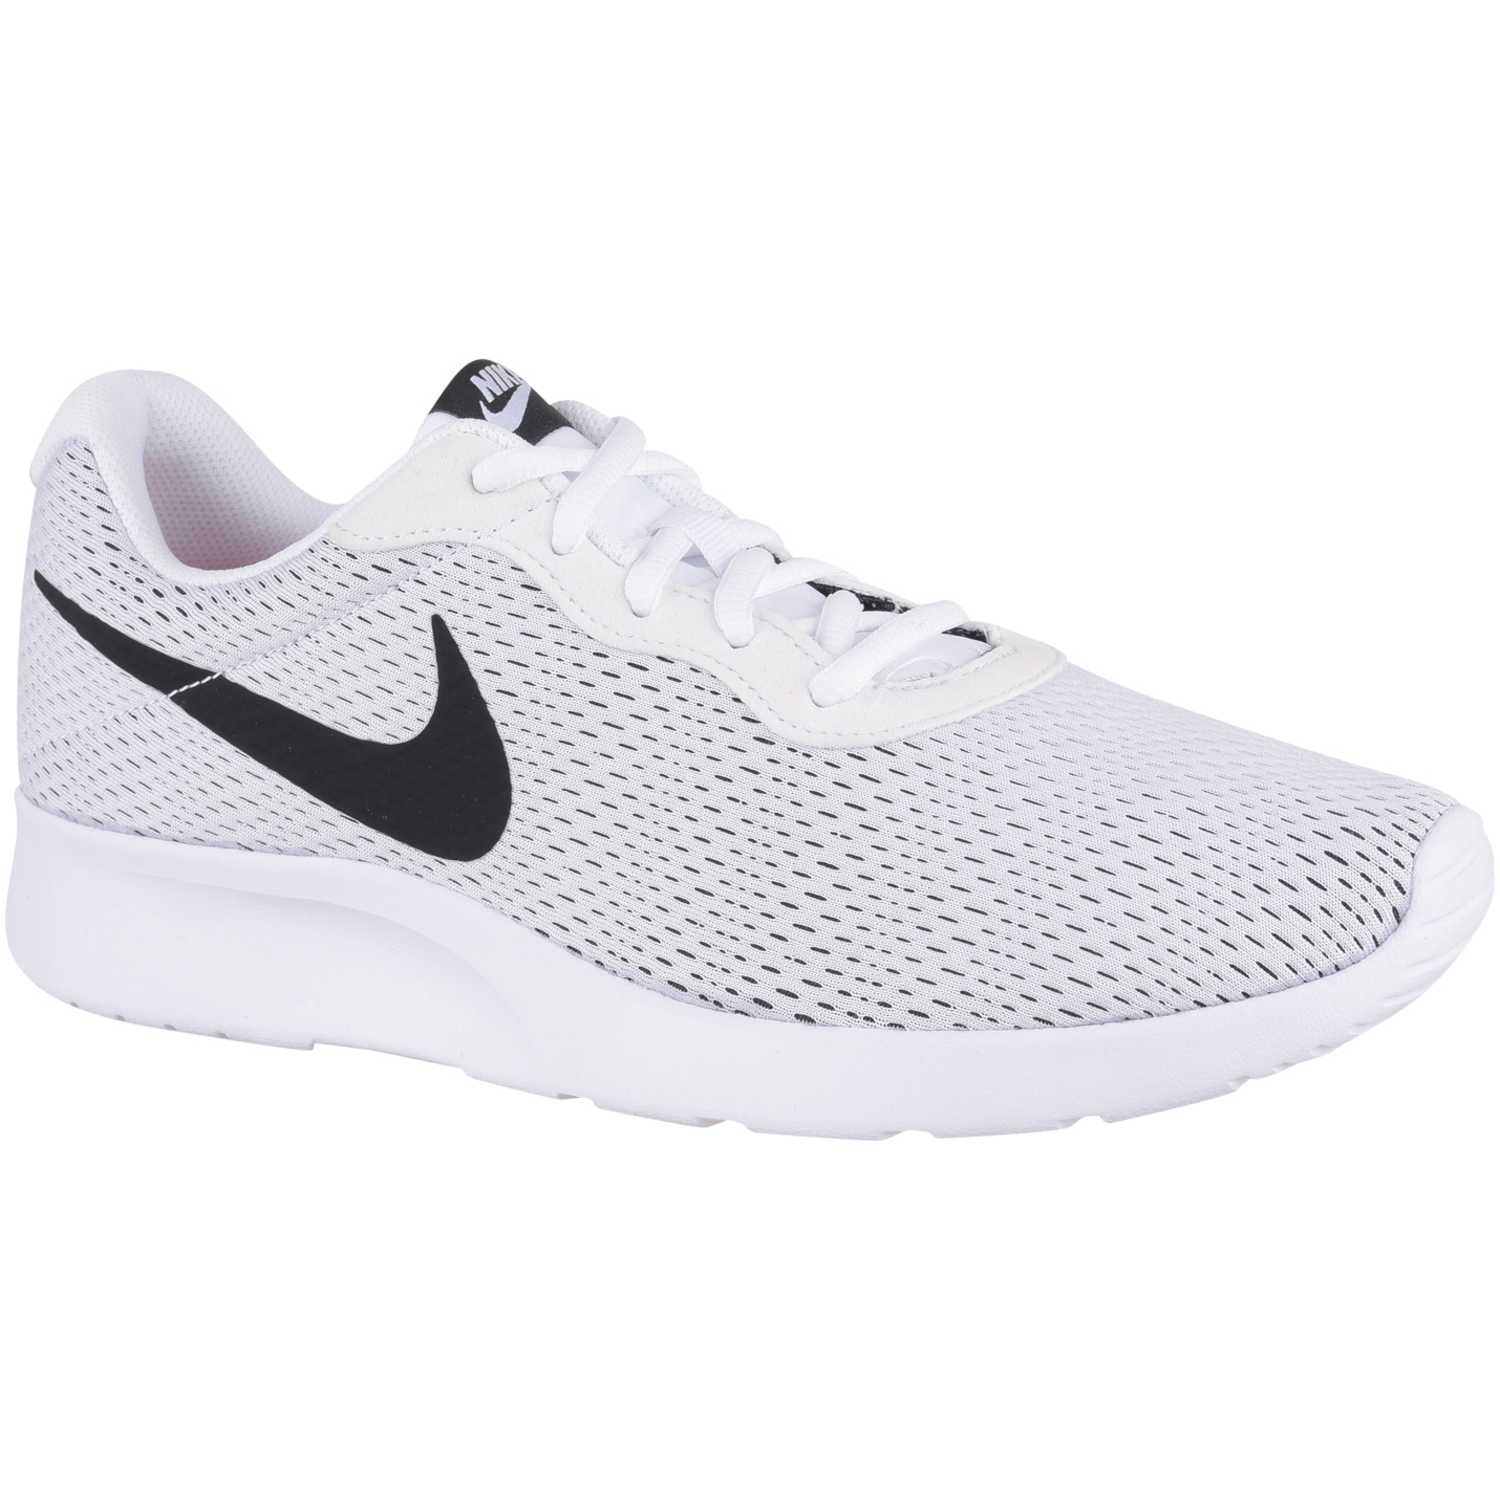 reputable site 90991 bf0f3 ... greece zapatilla de hombre nike blanco negro tanjun se 15cfa 37b7f